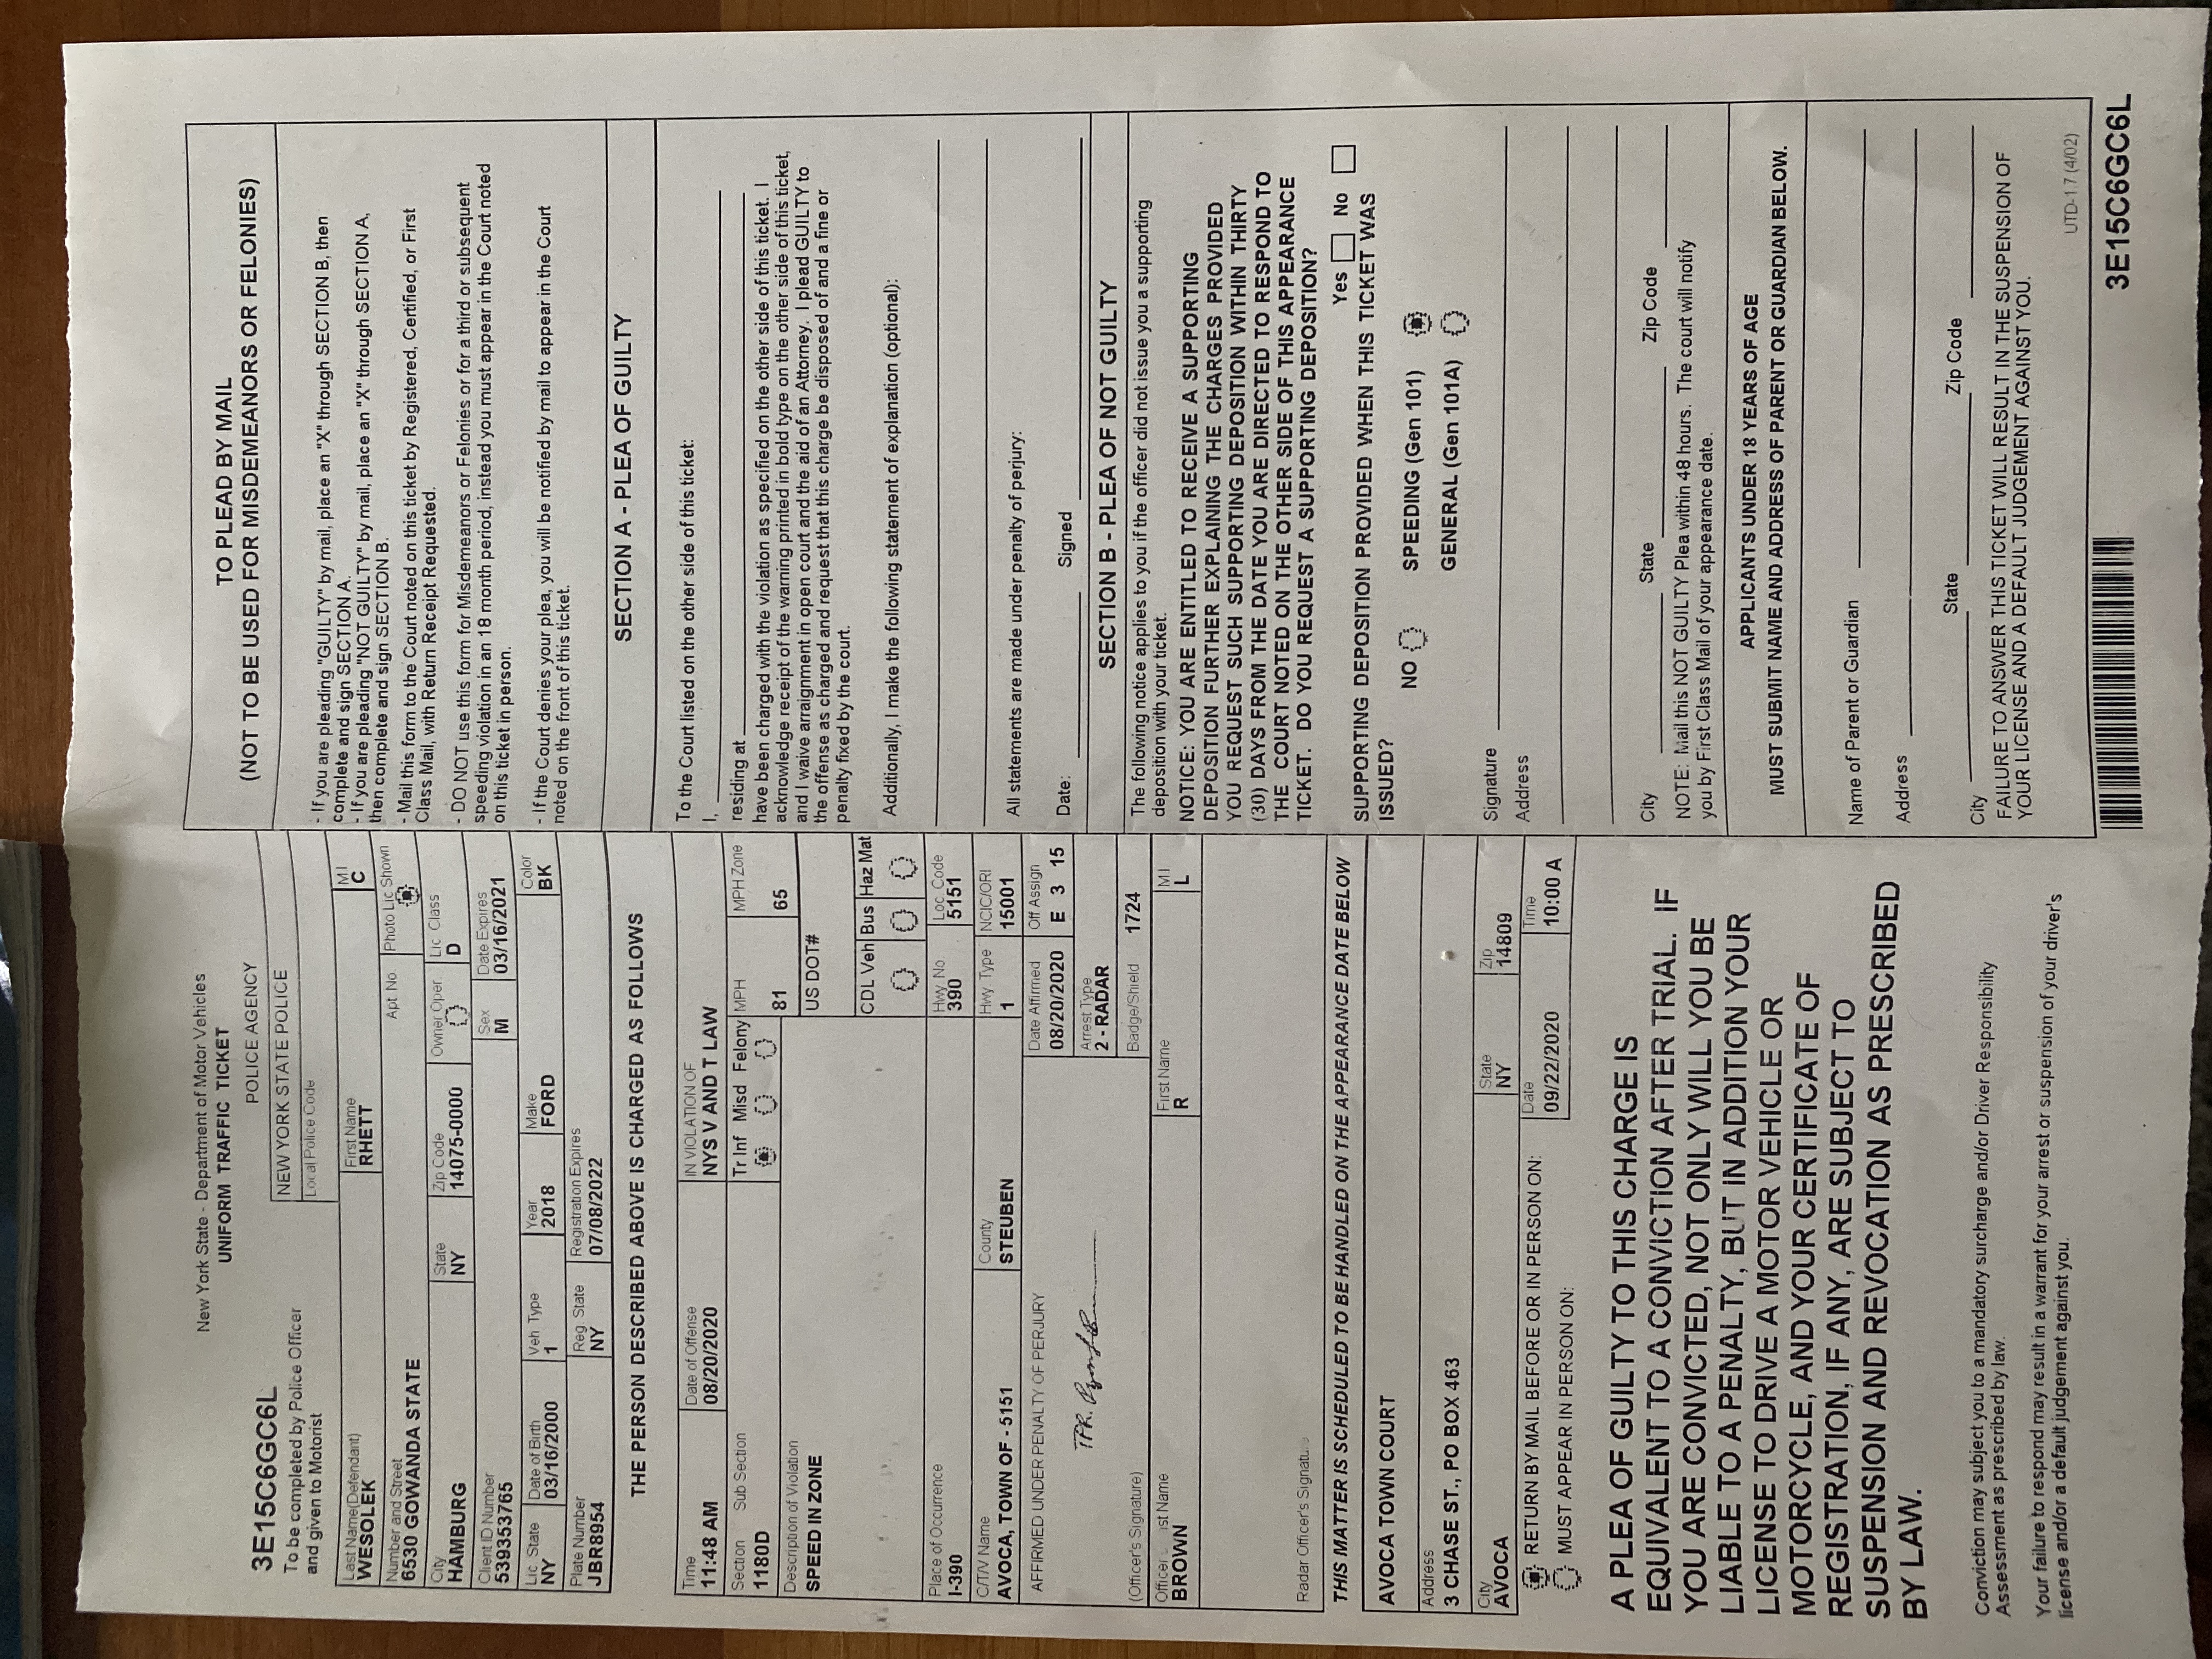 Attach a photograph or scan of your citation(s).